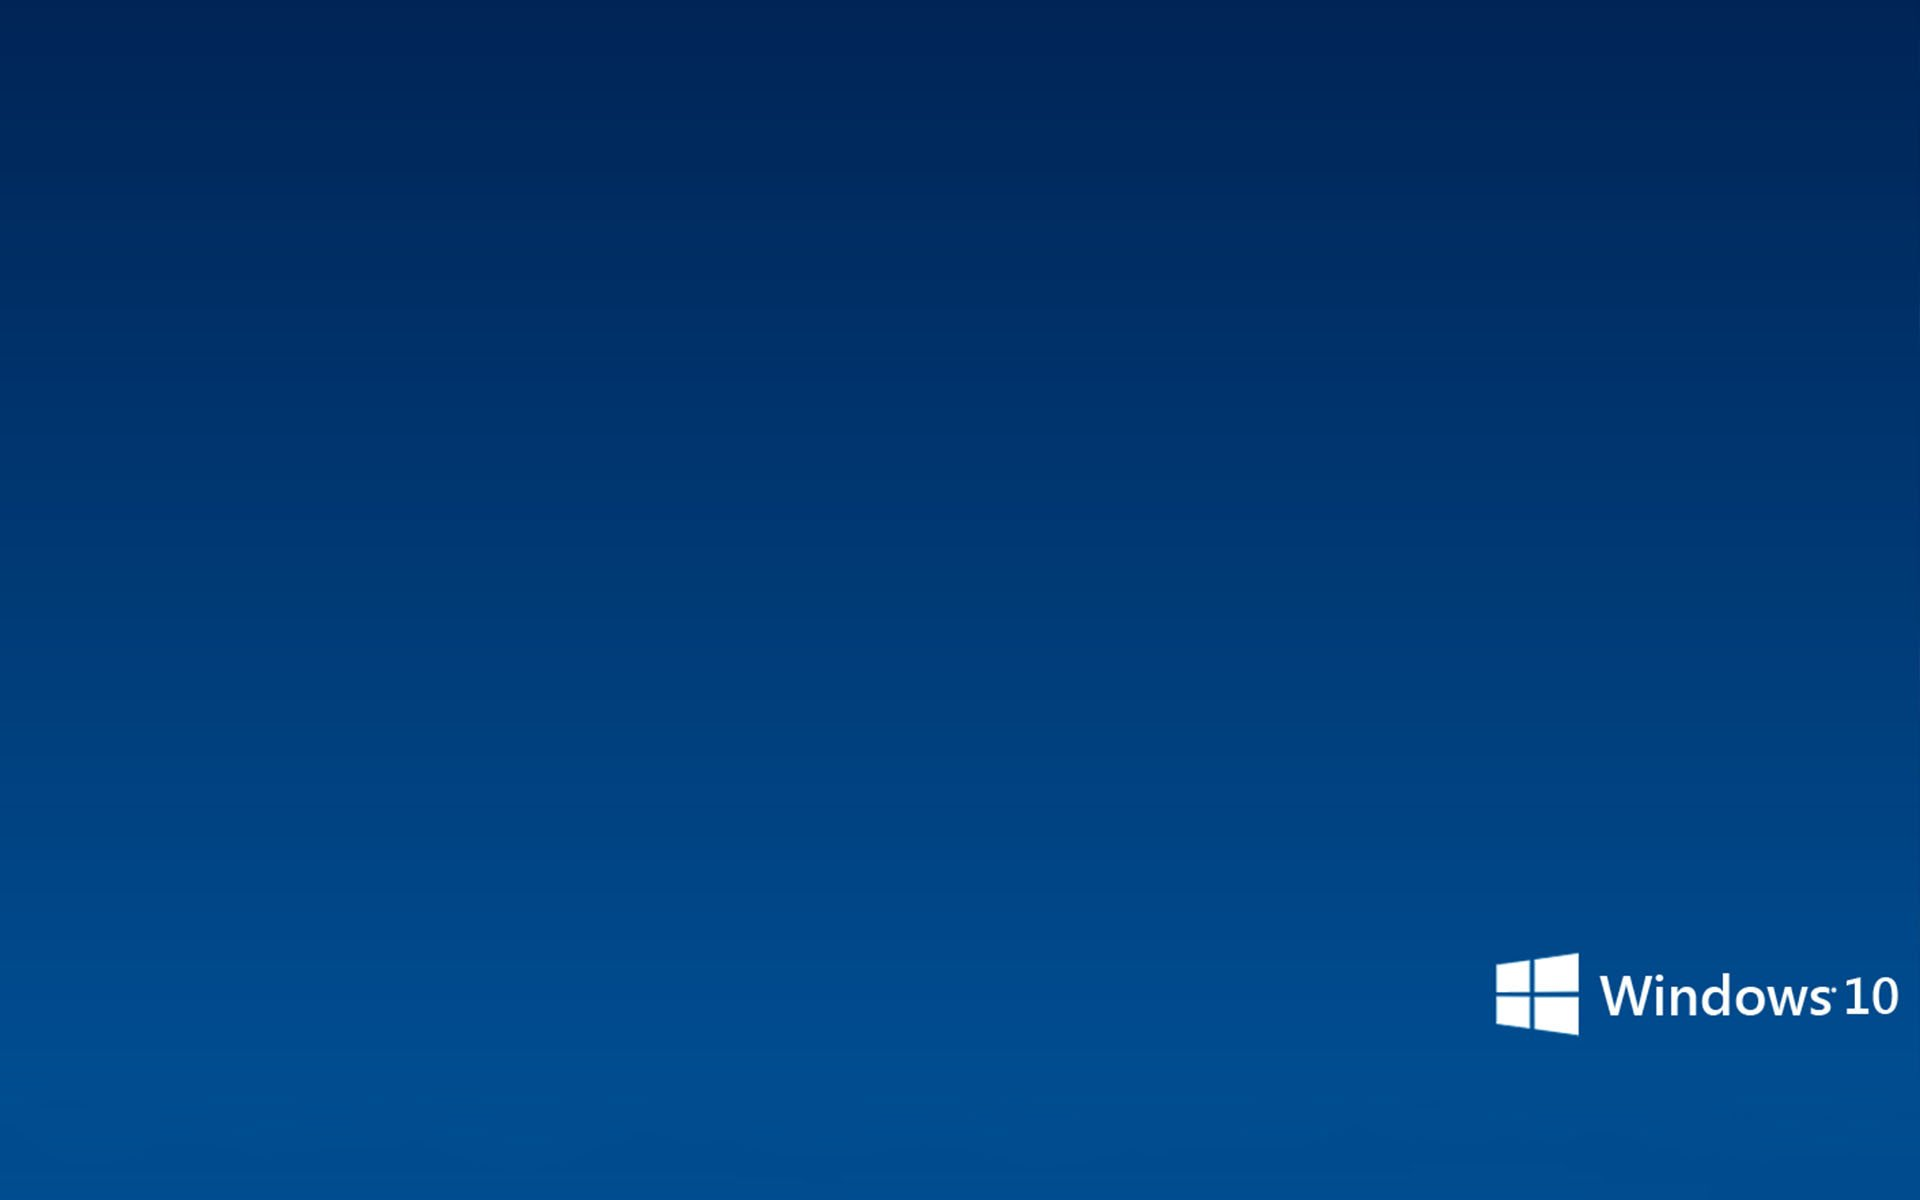 Microsoft windows 10 wallpapers wallpapersafari for Microsoft win10